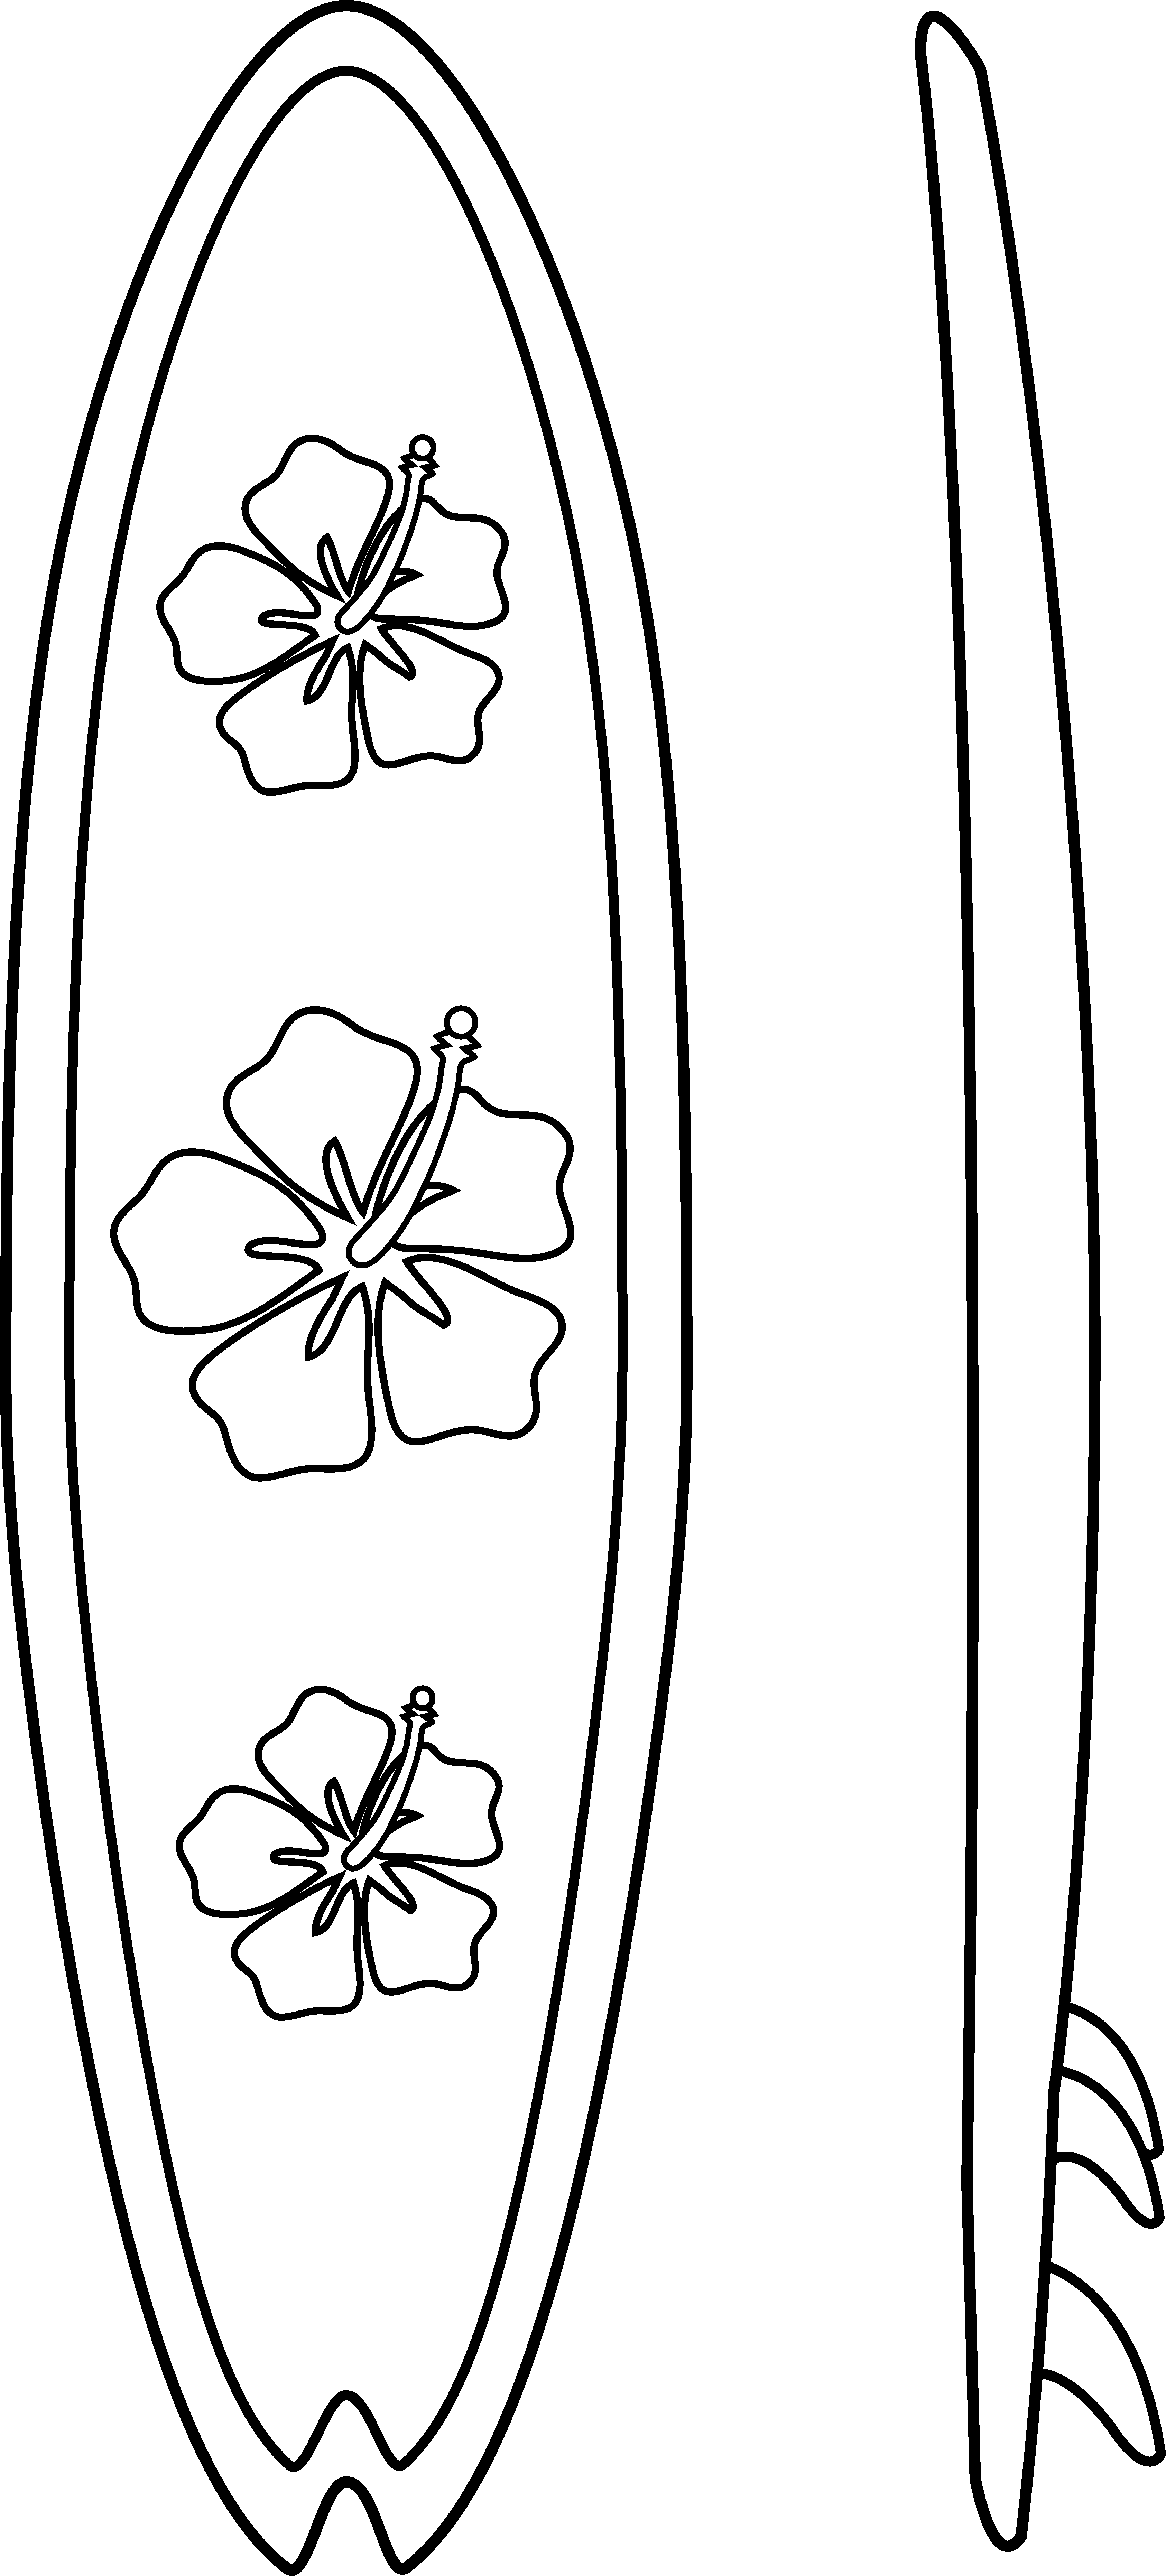 Surfboard outline clipart vector royalty free download Surfboards Outline | Vbs | Pinterest | Surfboards, Outlines and Clip art vector royalty free download